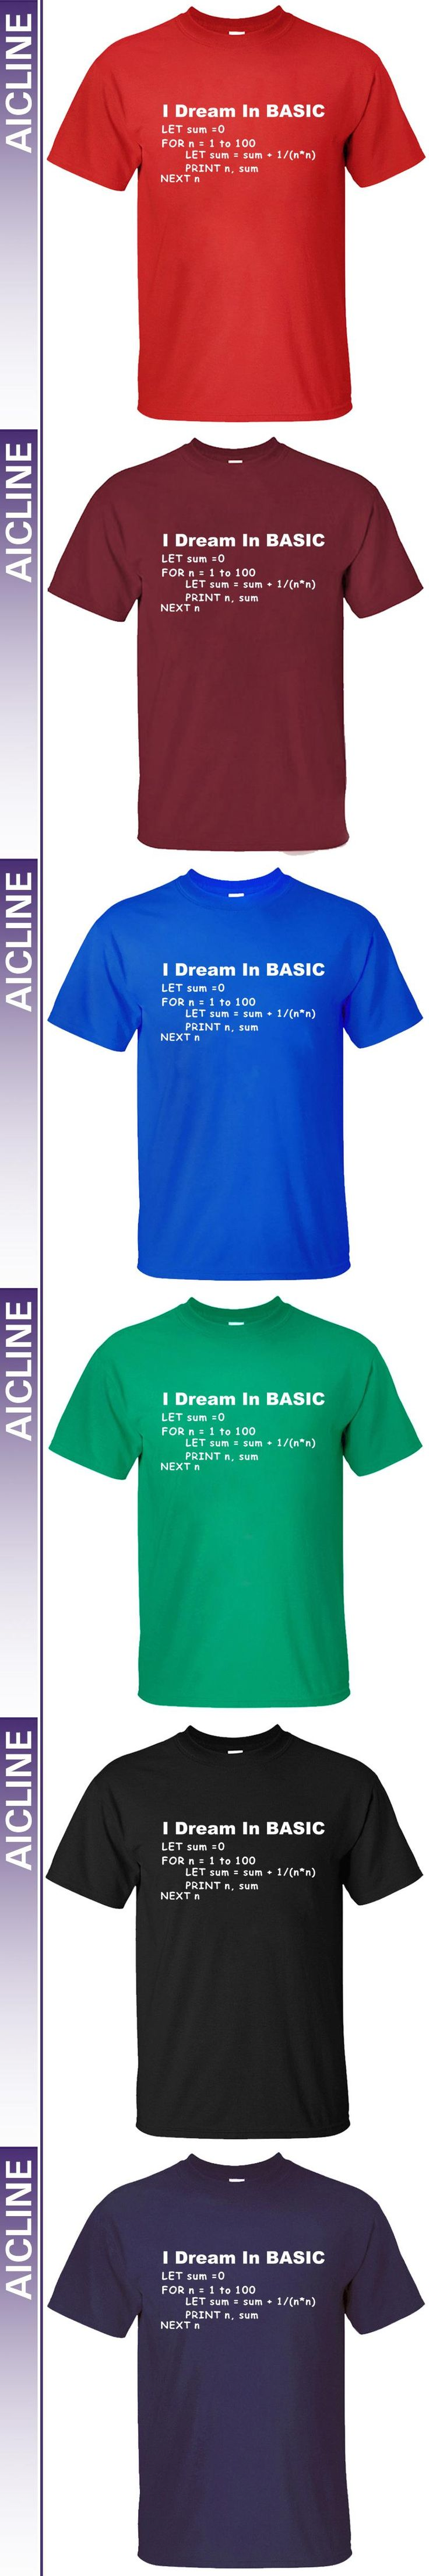 New Style Basic Programming Language Computer T-shirt Retro Video Game Funny Long sleeve T Shirt Men Casual Top Tees